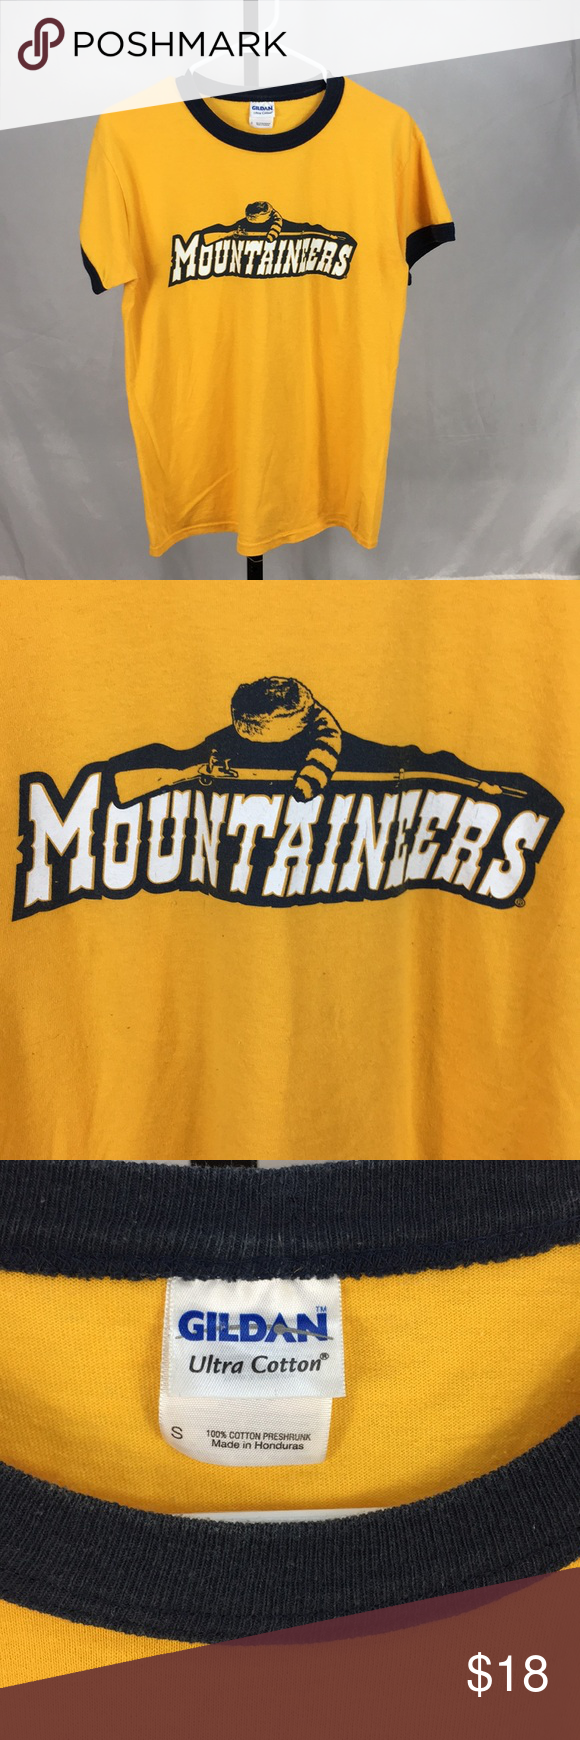 VINTAGE WVU MOUNTAINEERS T-SHIRT SMALL Vintage West Virginia University Mountaineers T-Shirt. Size SMALL. Gildan Shirts Tees - Short Sleeve #wvumountaineers